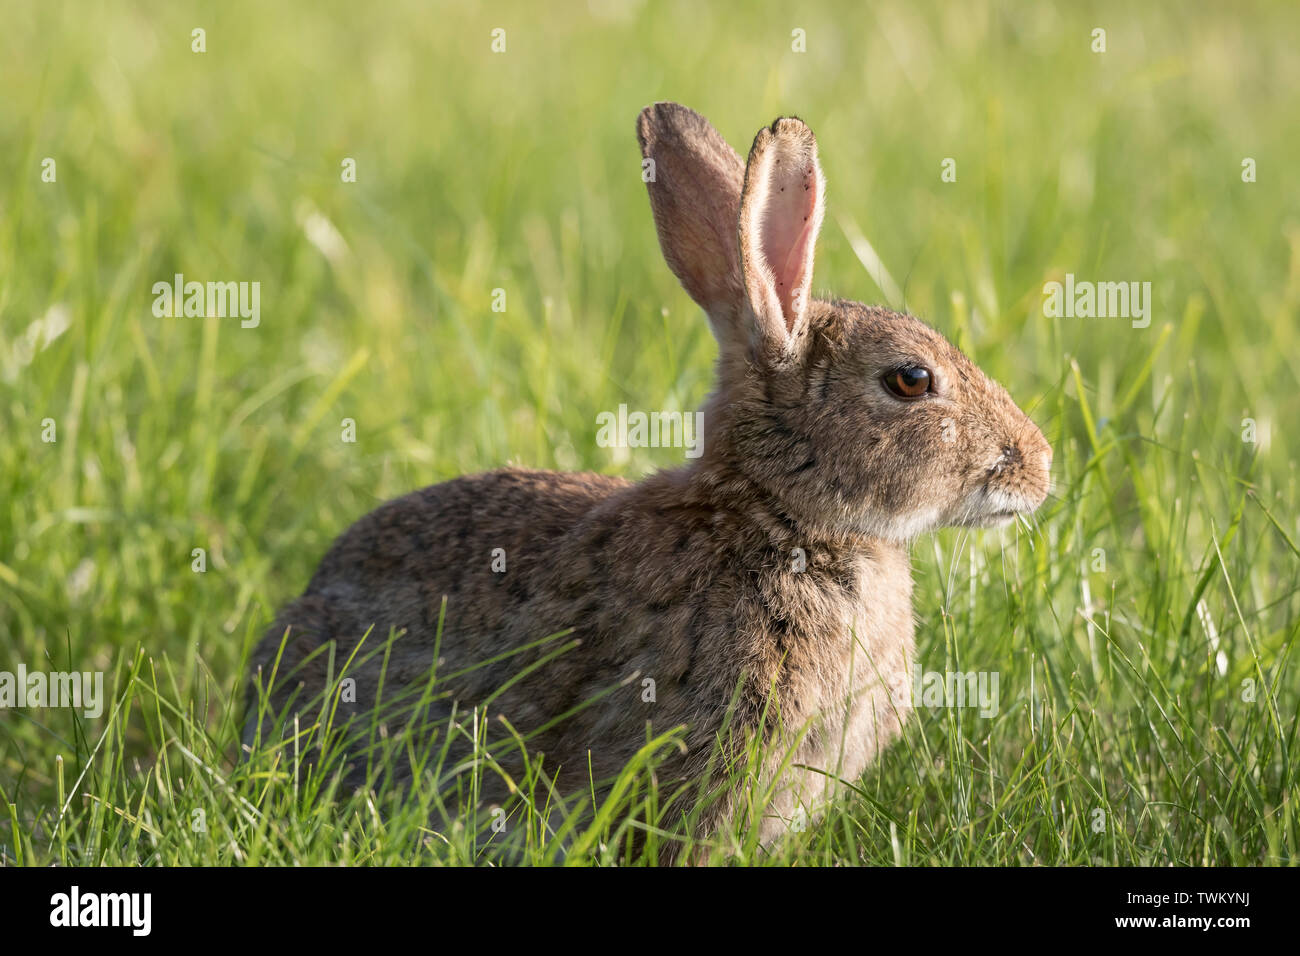 Detailed, close-up side view of a wild rabbit (Oryctolagus cuniculus) isolated outdoors in a UK meadow on a summer afternoon in the sun. - Stock Image